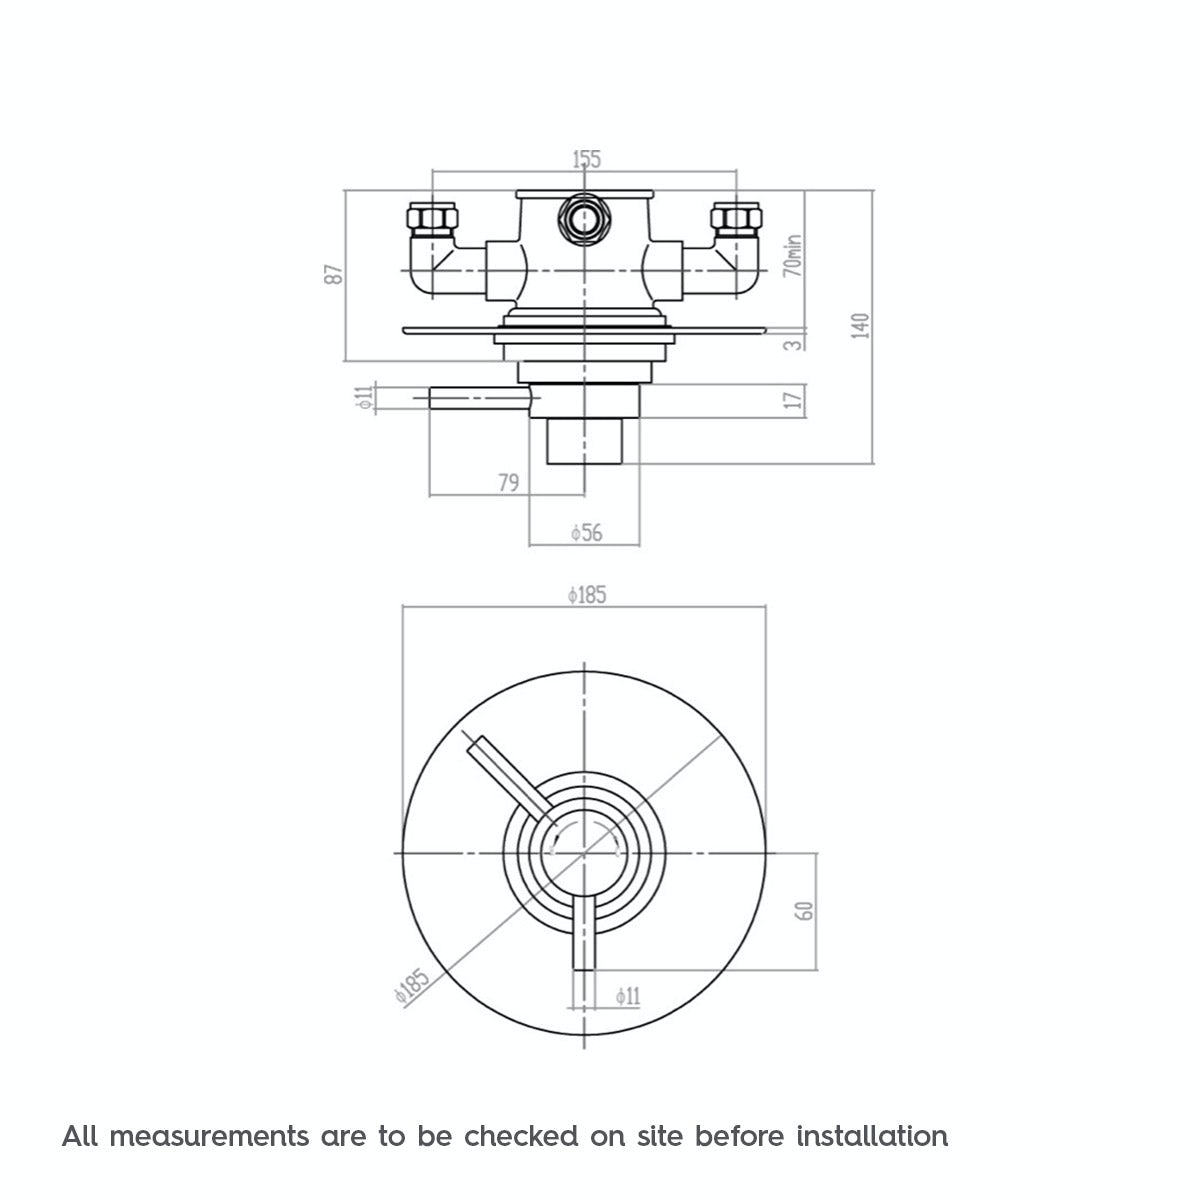 Dimensions for Mode Minimalist concealed thermostatic shower valve